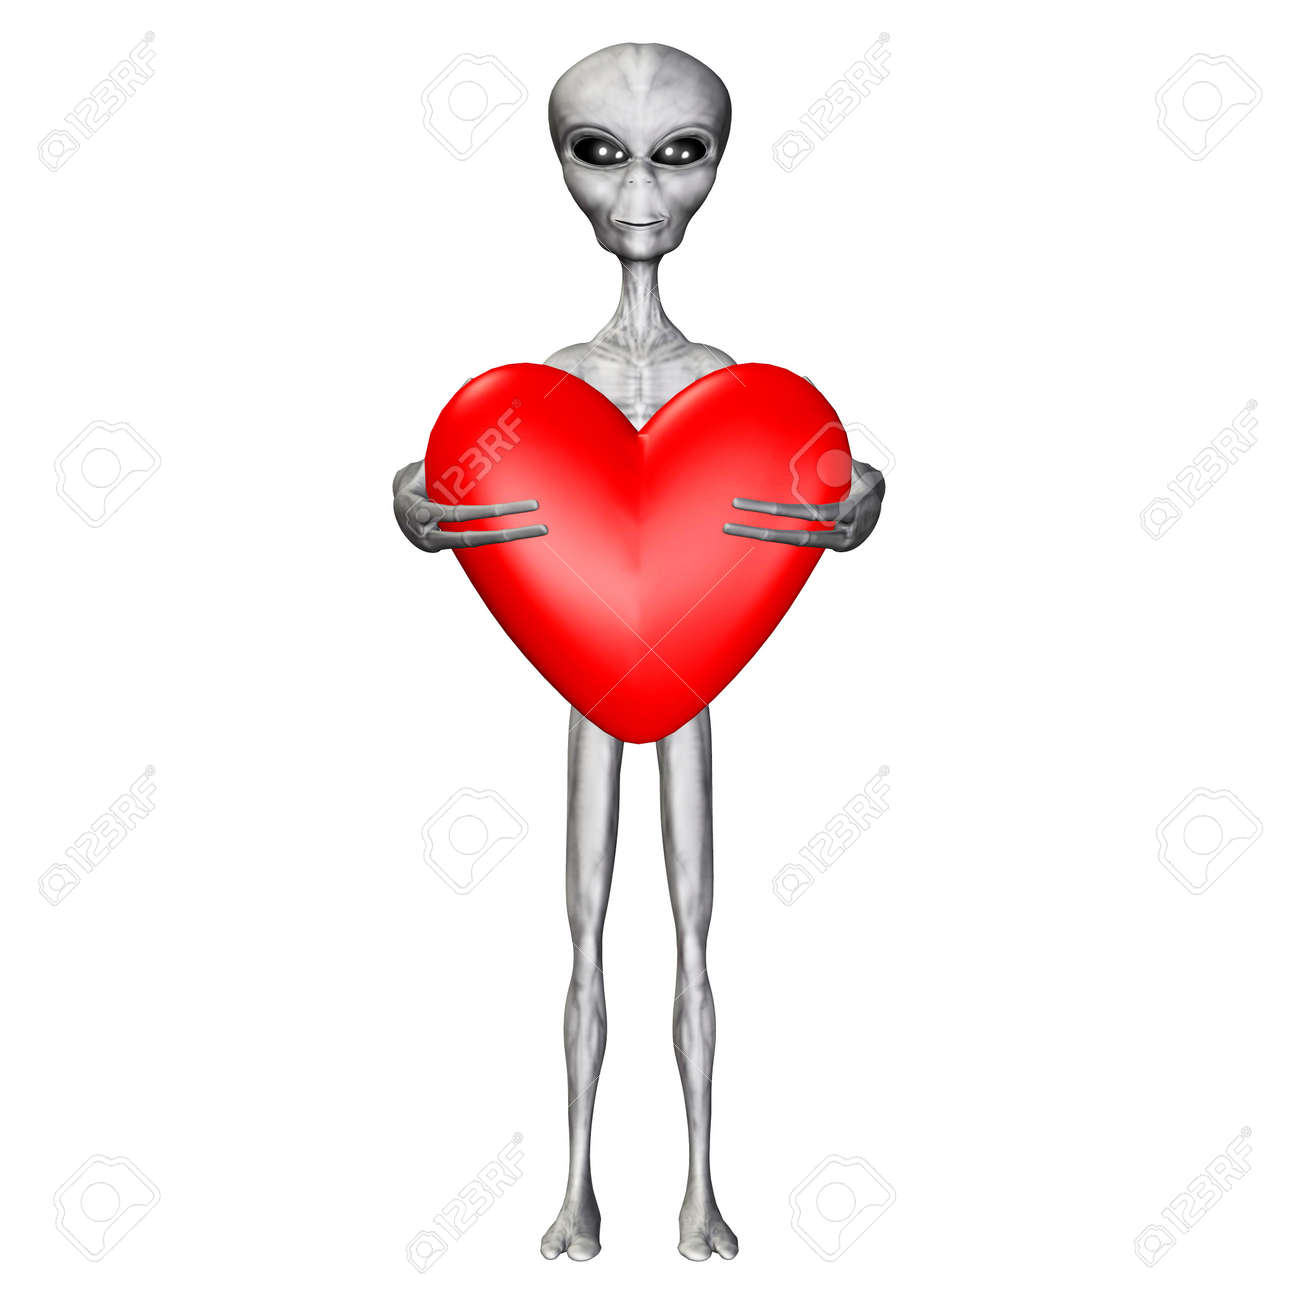 Illustration of an alien holding a heart isolated on a white background Stock Photo - 12744766